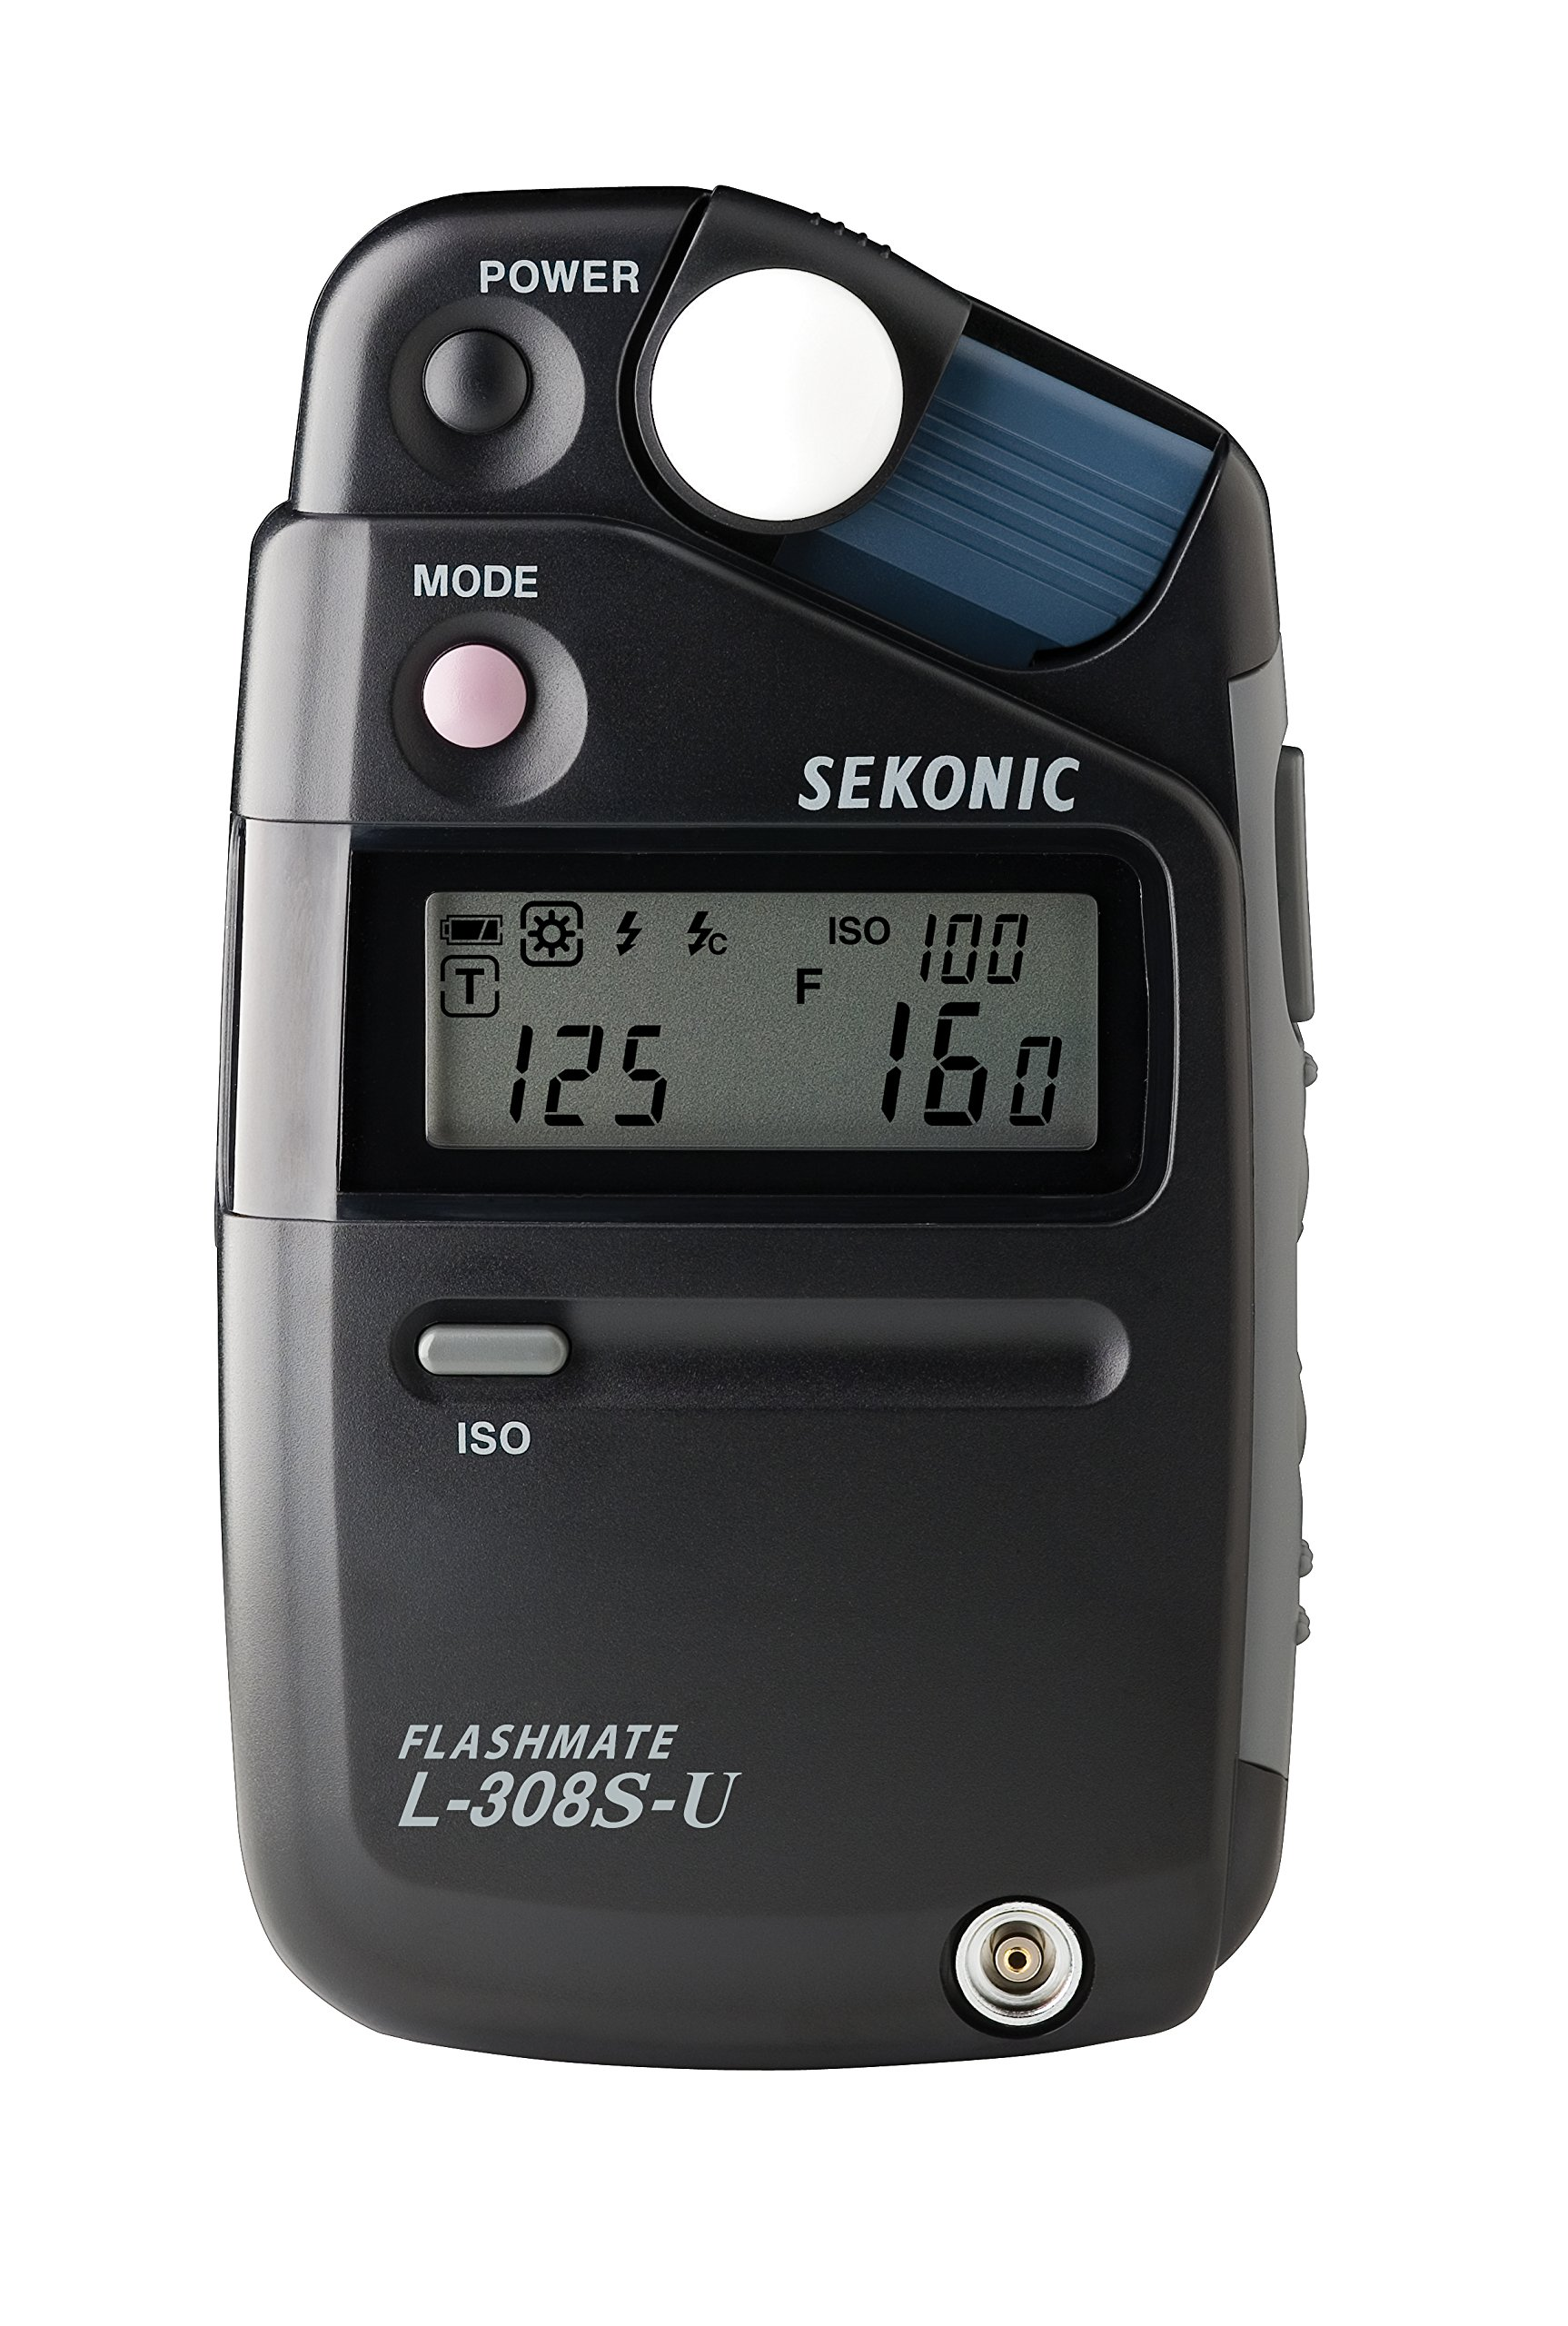 New Sekonic L-308S-U Flashmate Lightmeter And Exclusive 3-Year Warranty by Sekonic